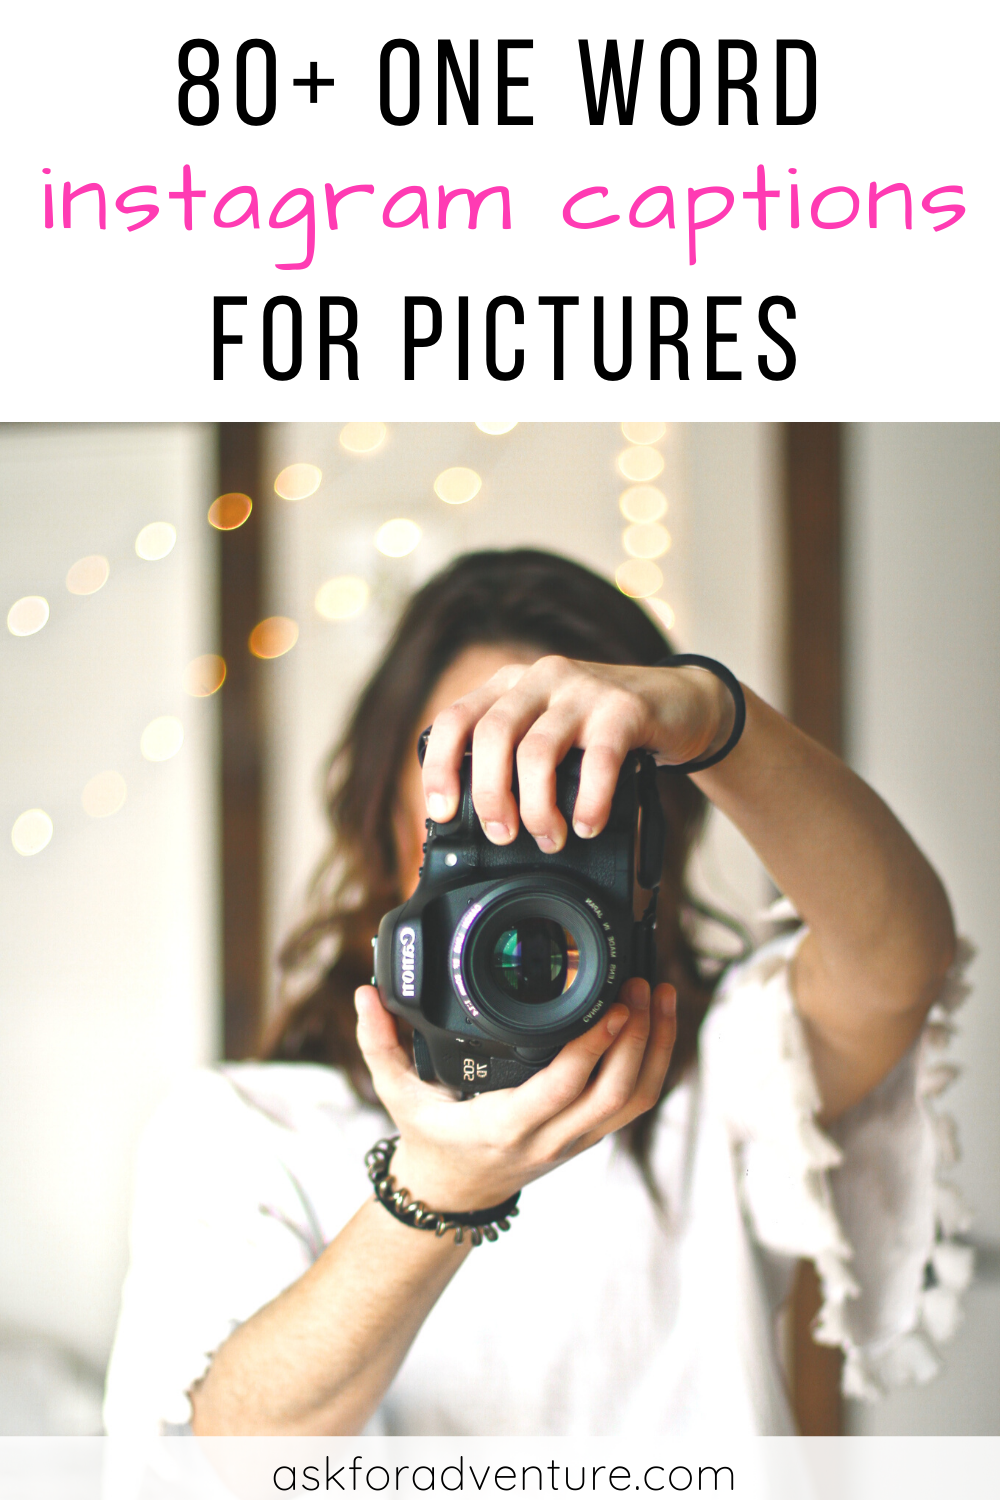 80+ One Word Captions for Instagram Pictures | One word ...